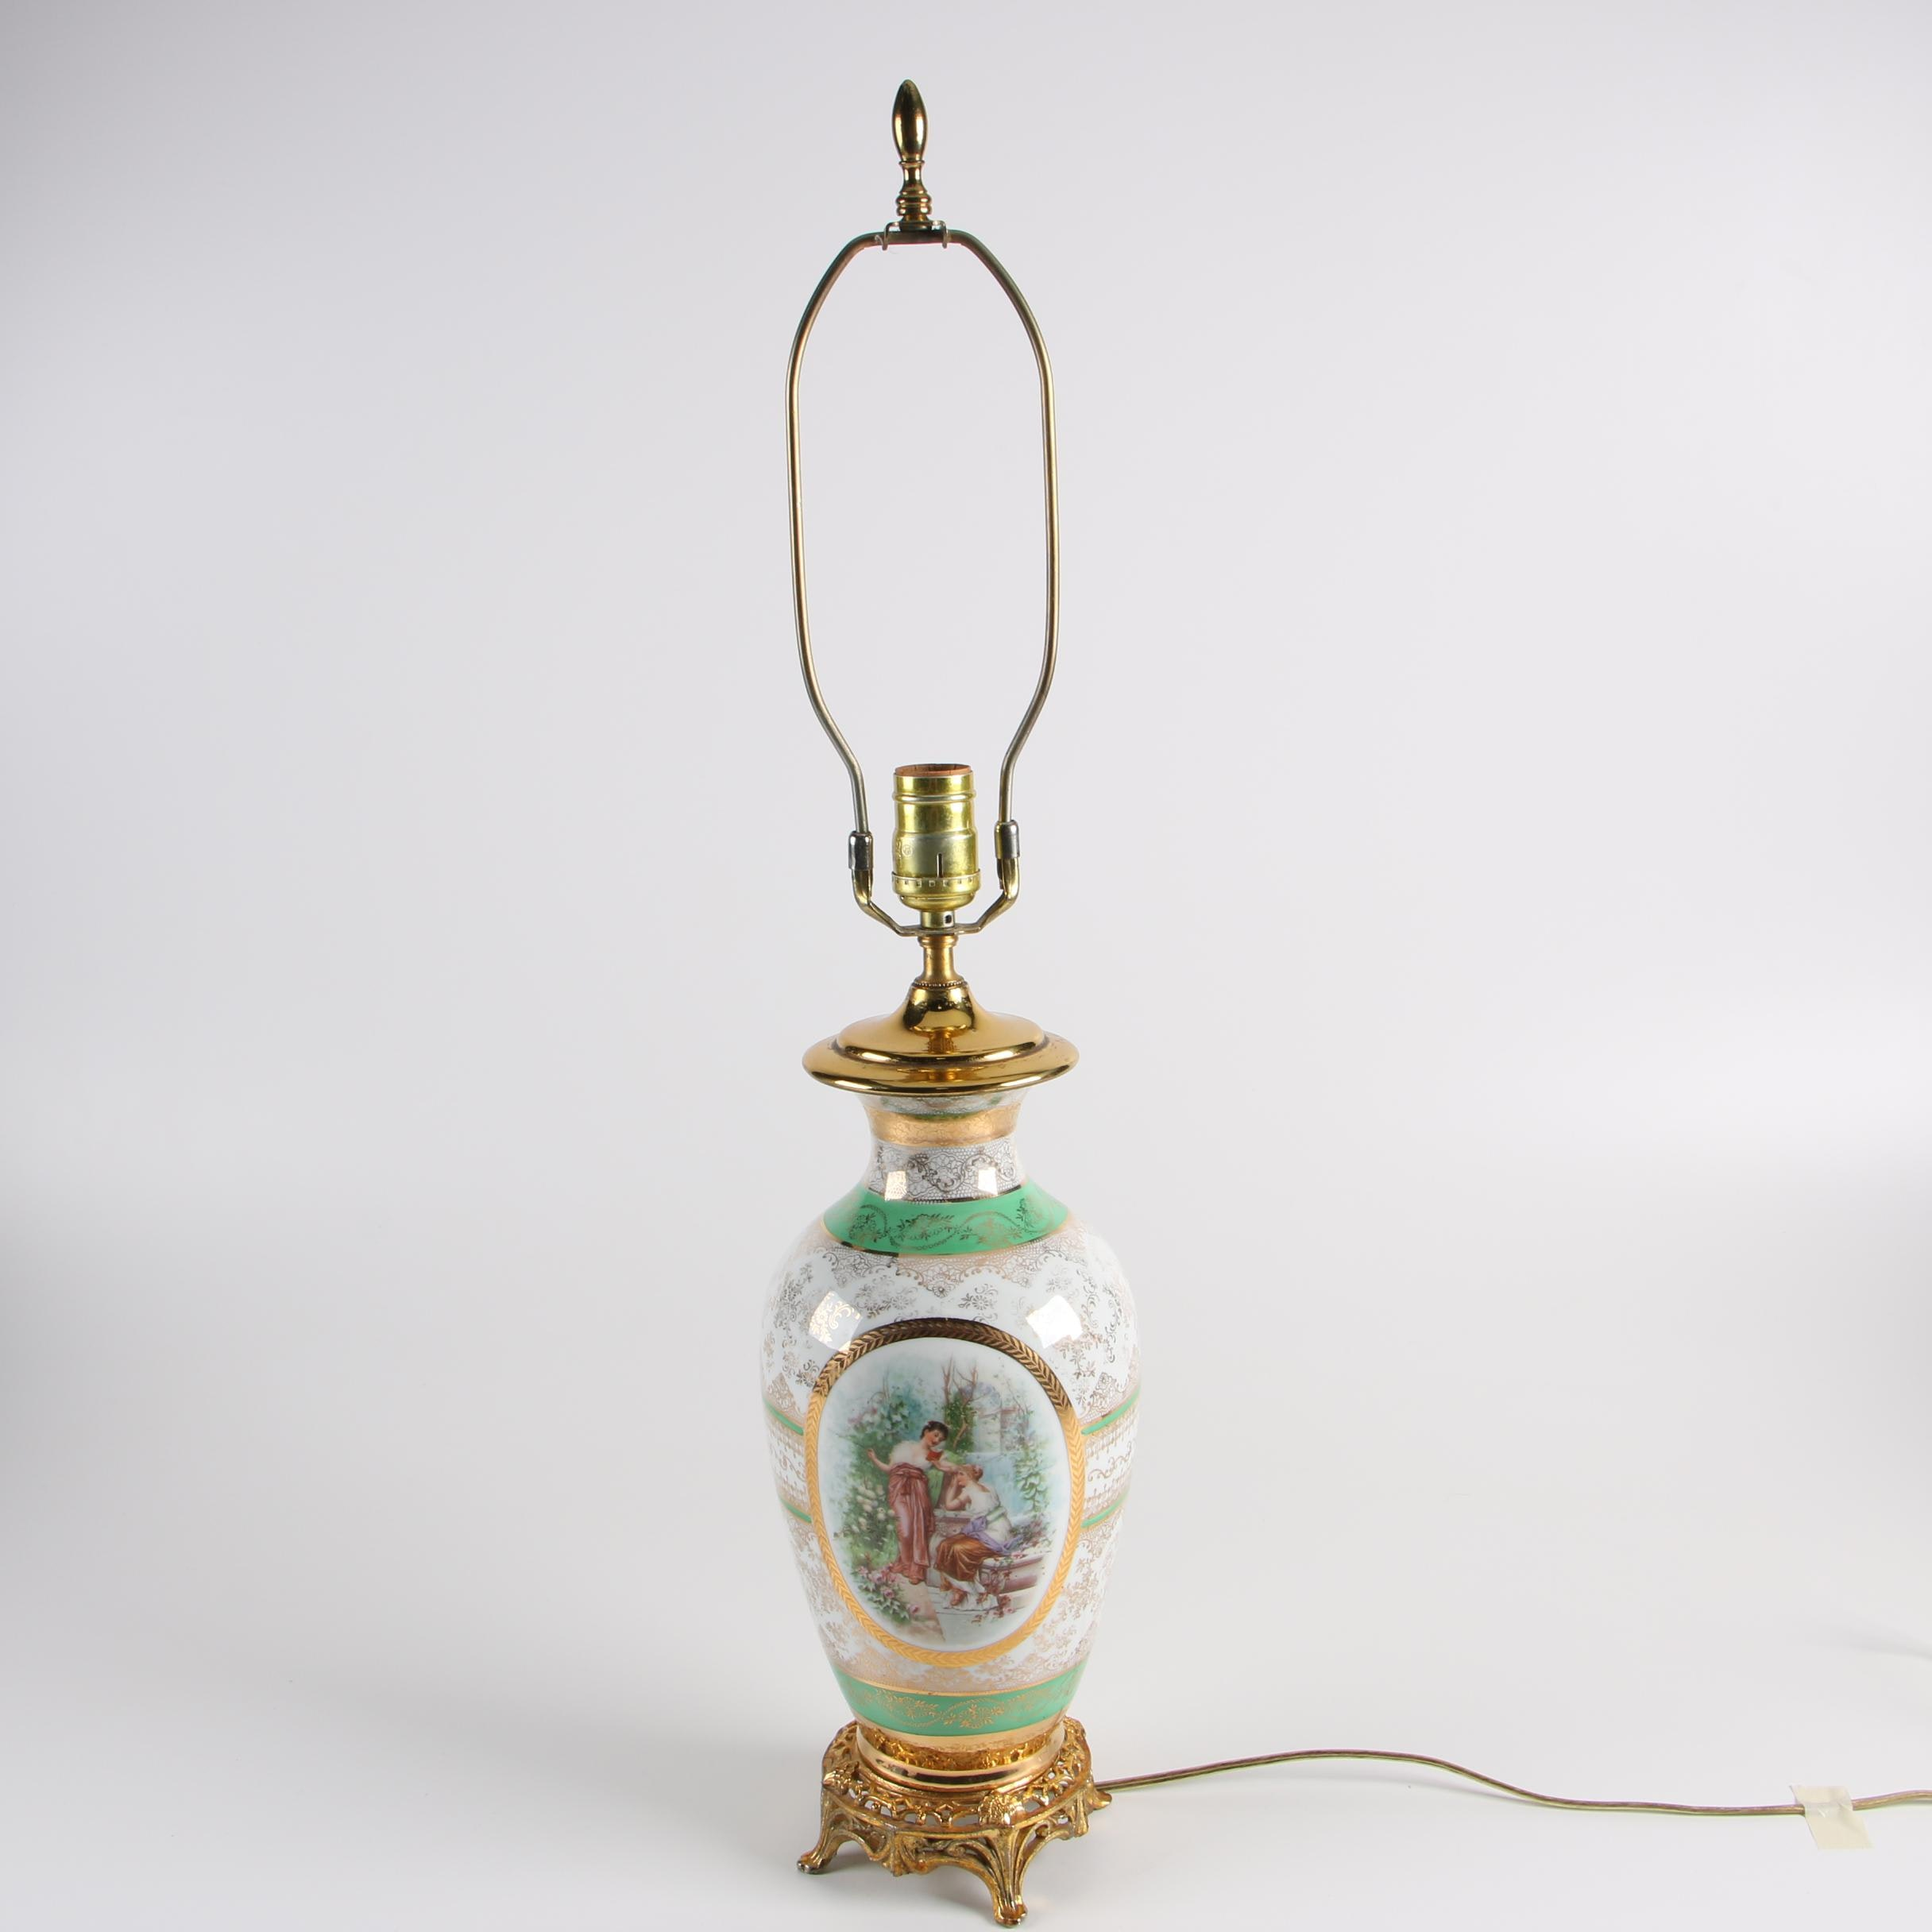 Glass Mounted Vase Table Lamp with Figurative Scene and Gilt Accents